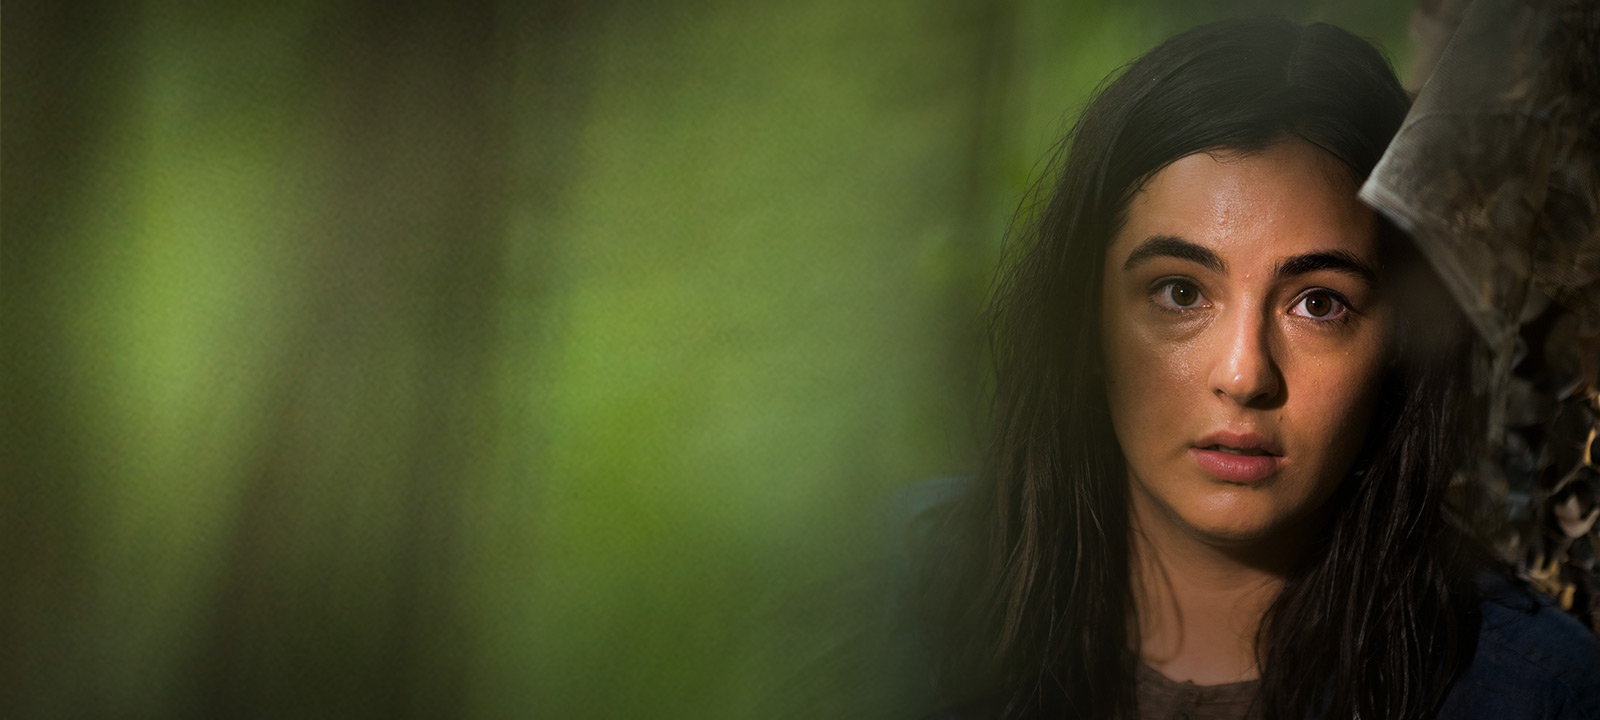 the-walking-dead-episode-706-tara-masterson-800×600-photos